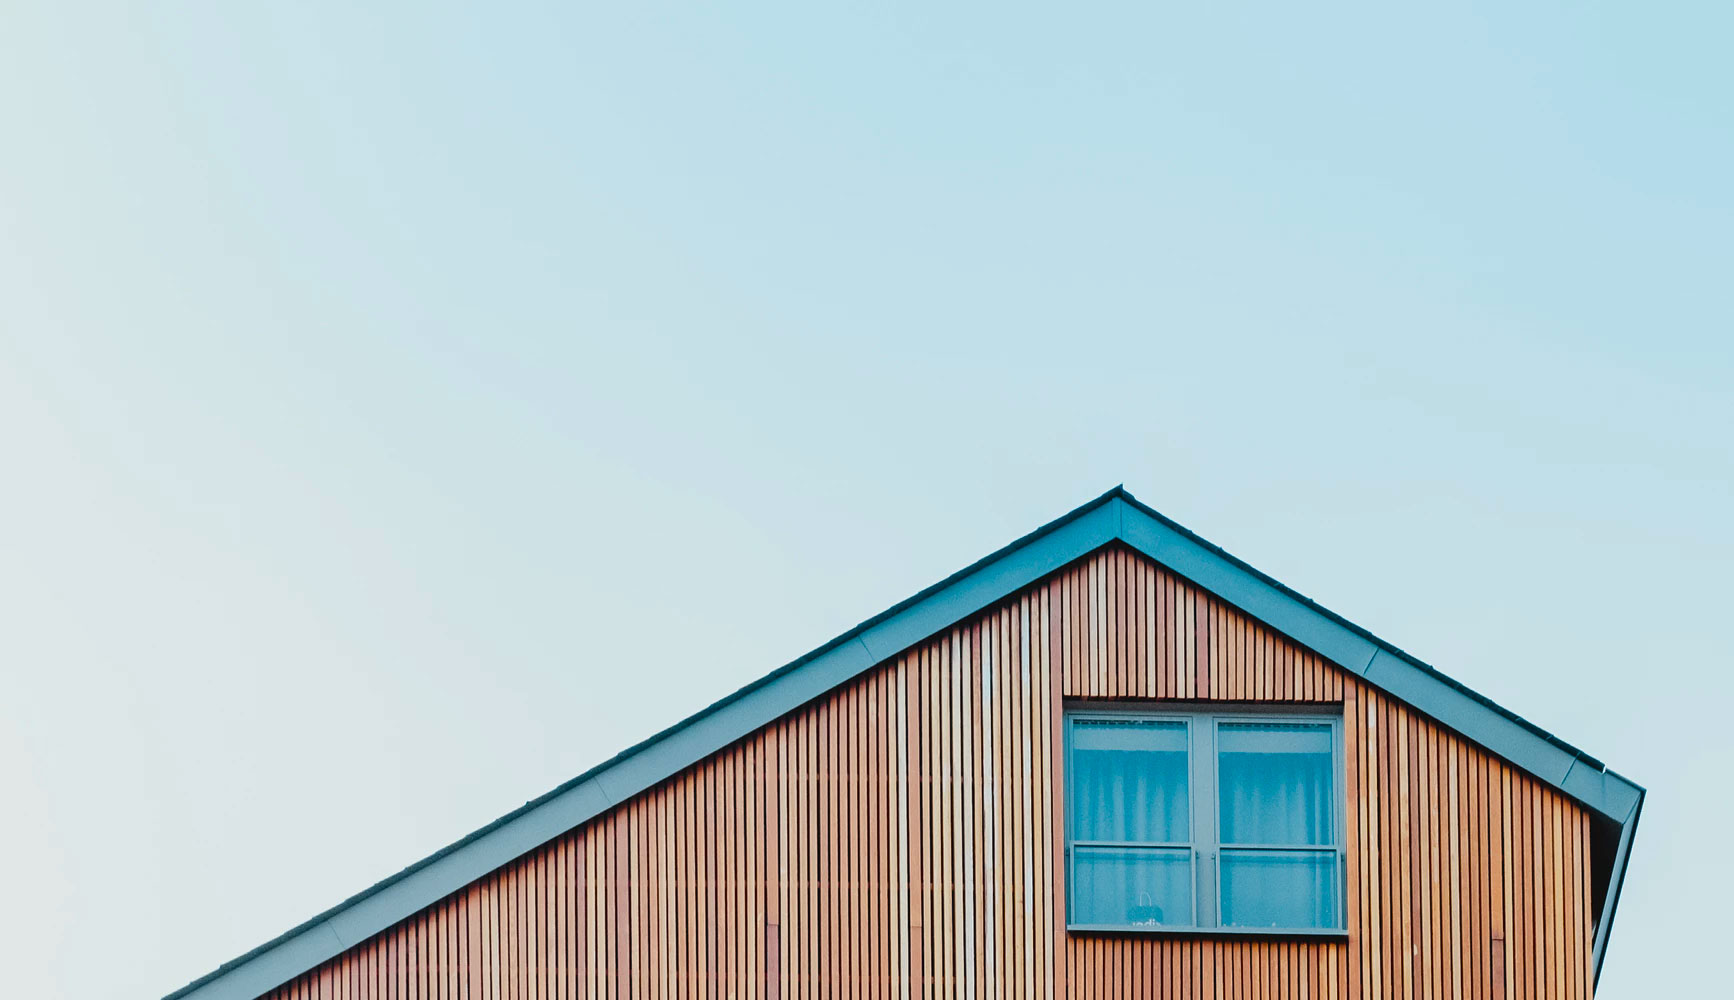 Validate property titles automatically before approving credit